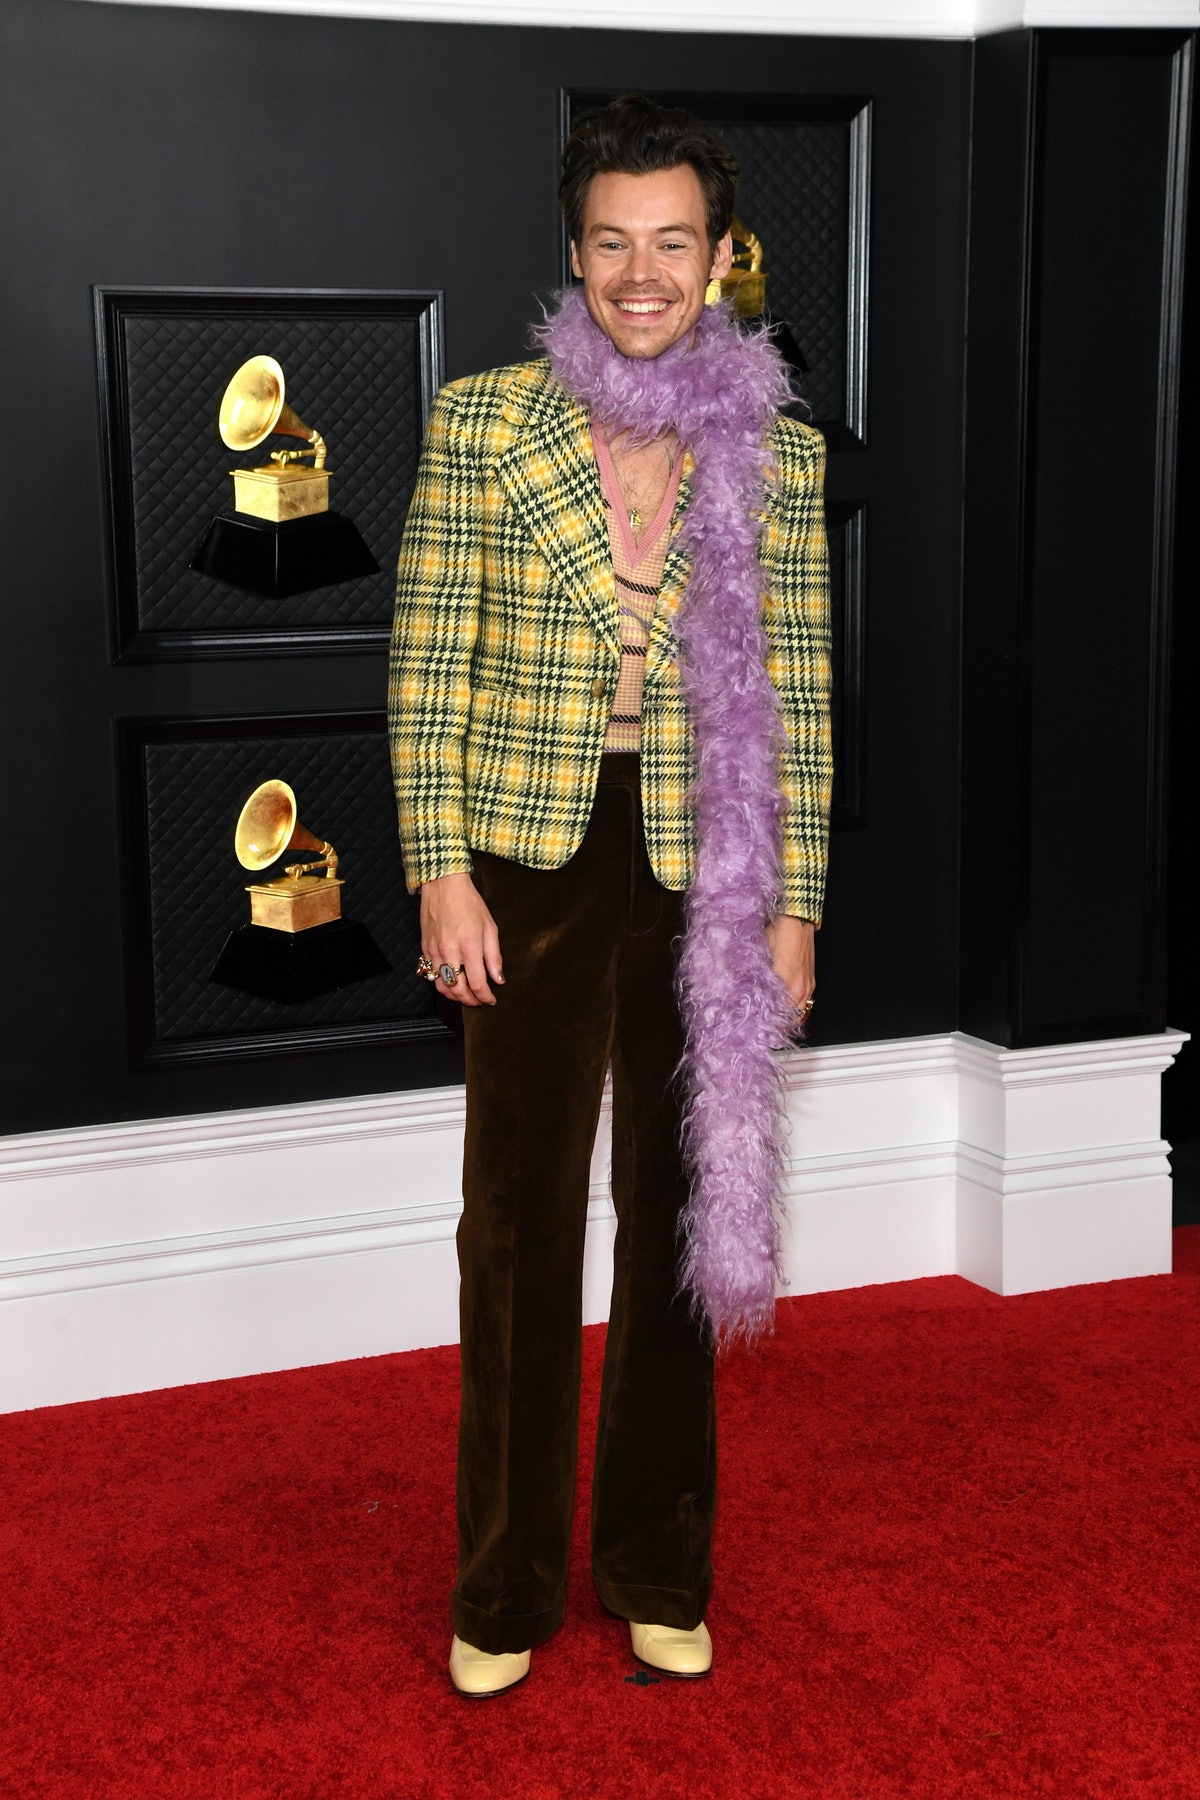 LOS ANGELES, CALIFORNIA - MARCH 14: Harry Styles attends the 63rd Annual GRAMMY Awards at Los Angele...